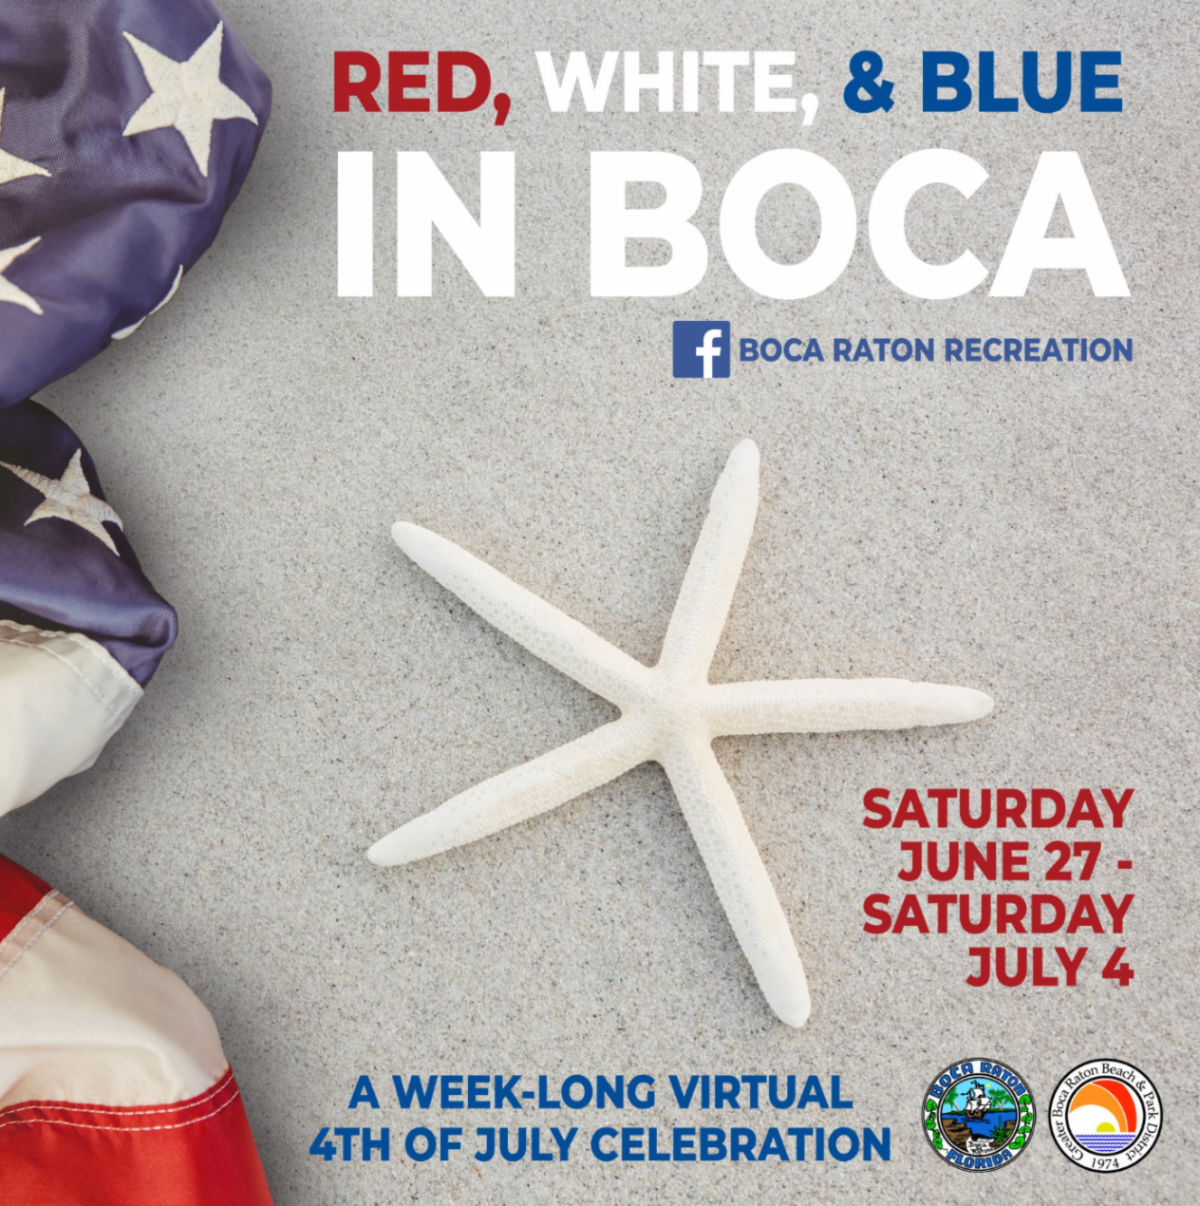 Red, White and Blue in Boca. SAturday June 27 to Saturday July 4. A week long virtual 4th of july celebration. Boca Raton REcreation on Facebook